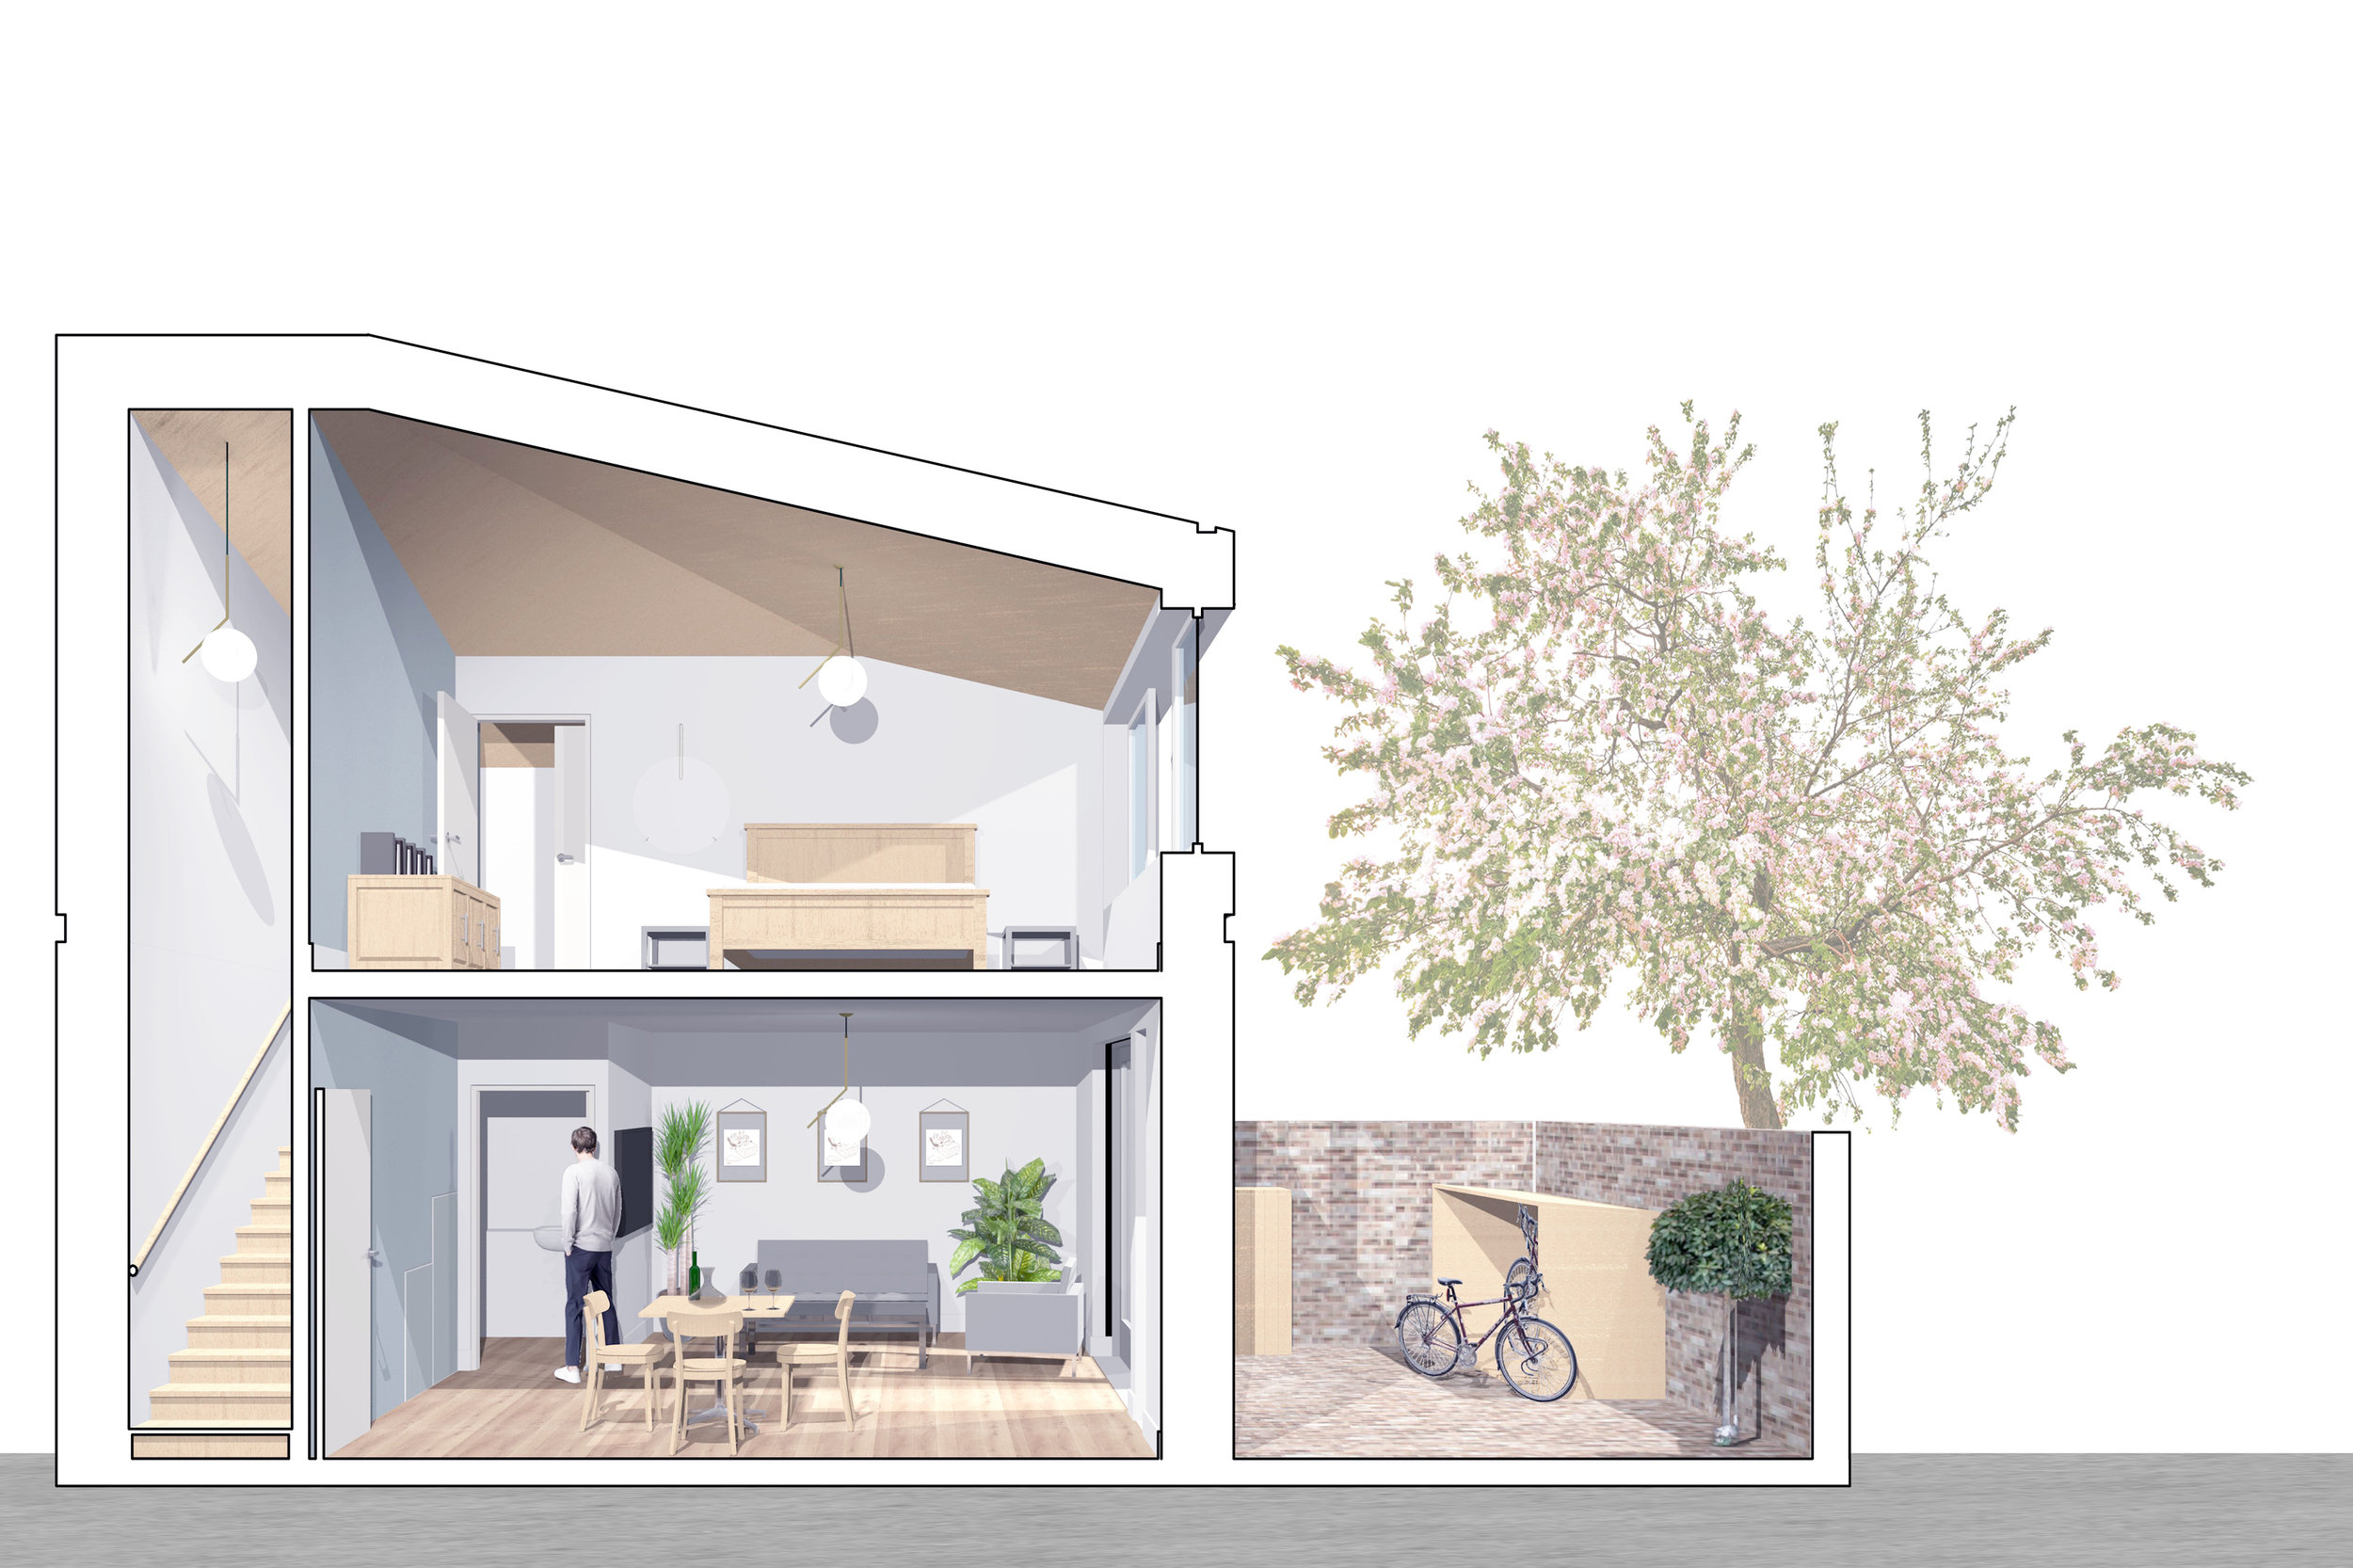 Concept Visual of Residential House Type for Social Housing Development for Peabody